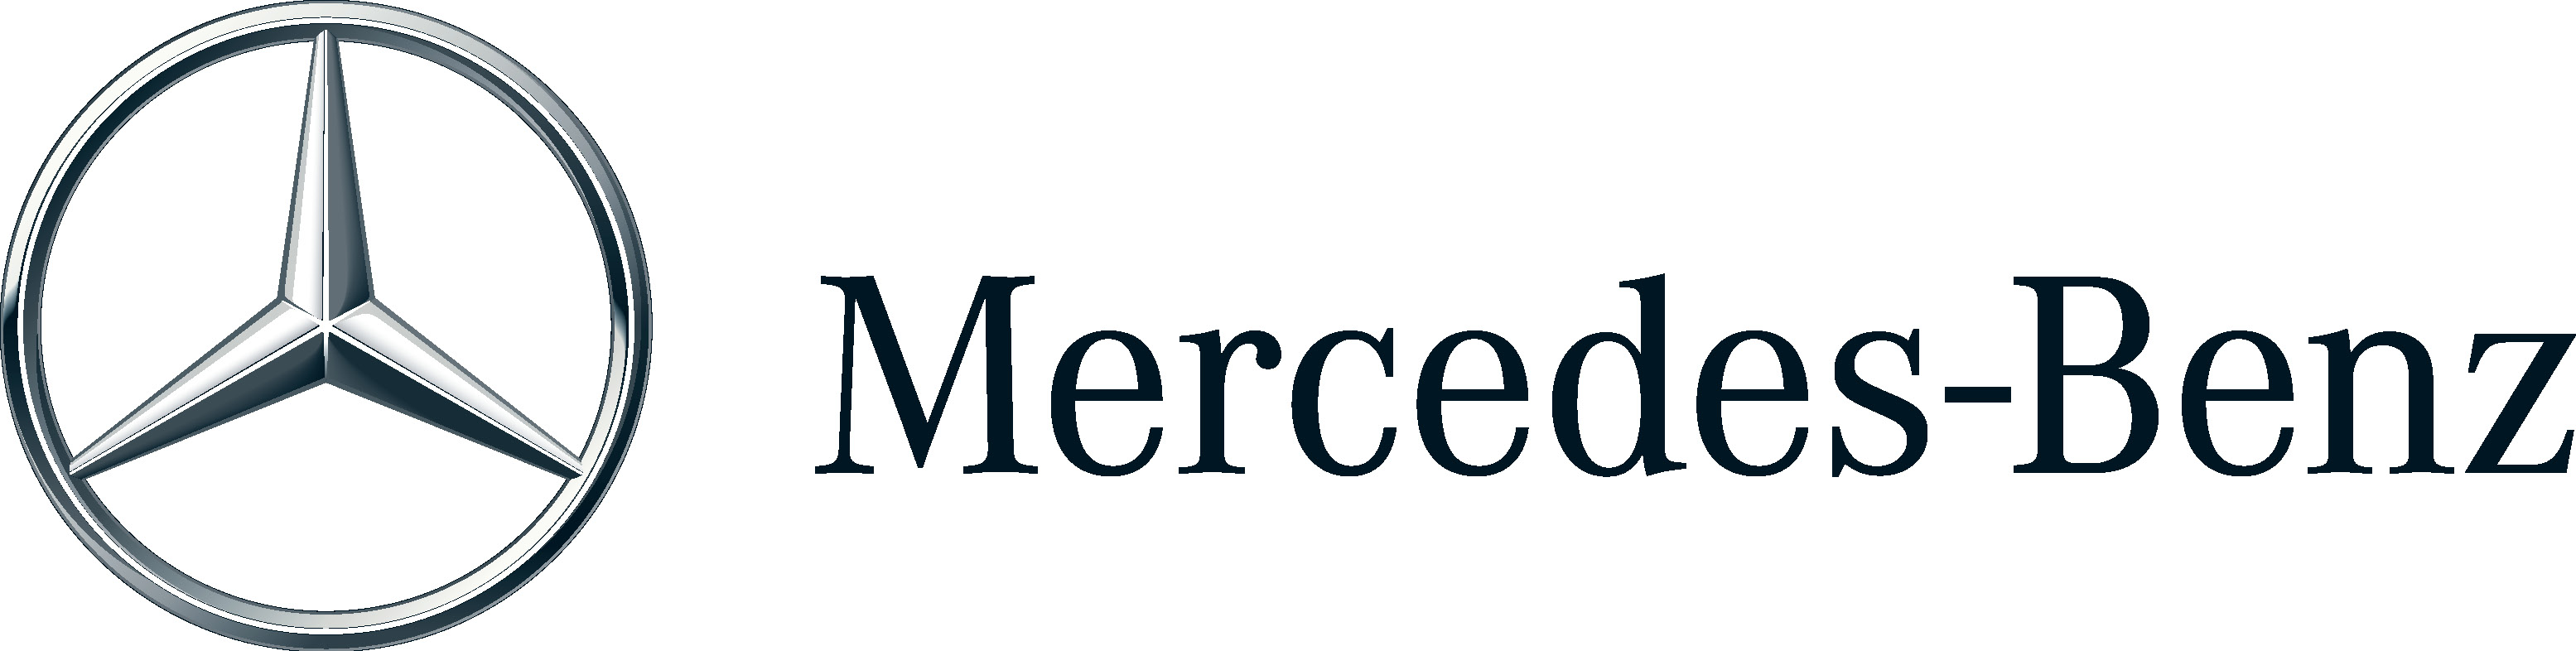 Mercedes benz logopedia the logo and branding site for Mercedes benz financial services jobs